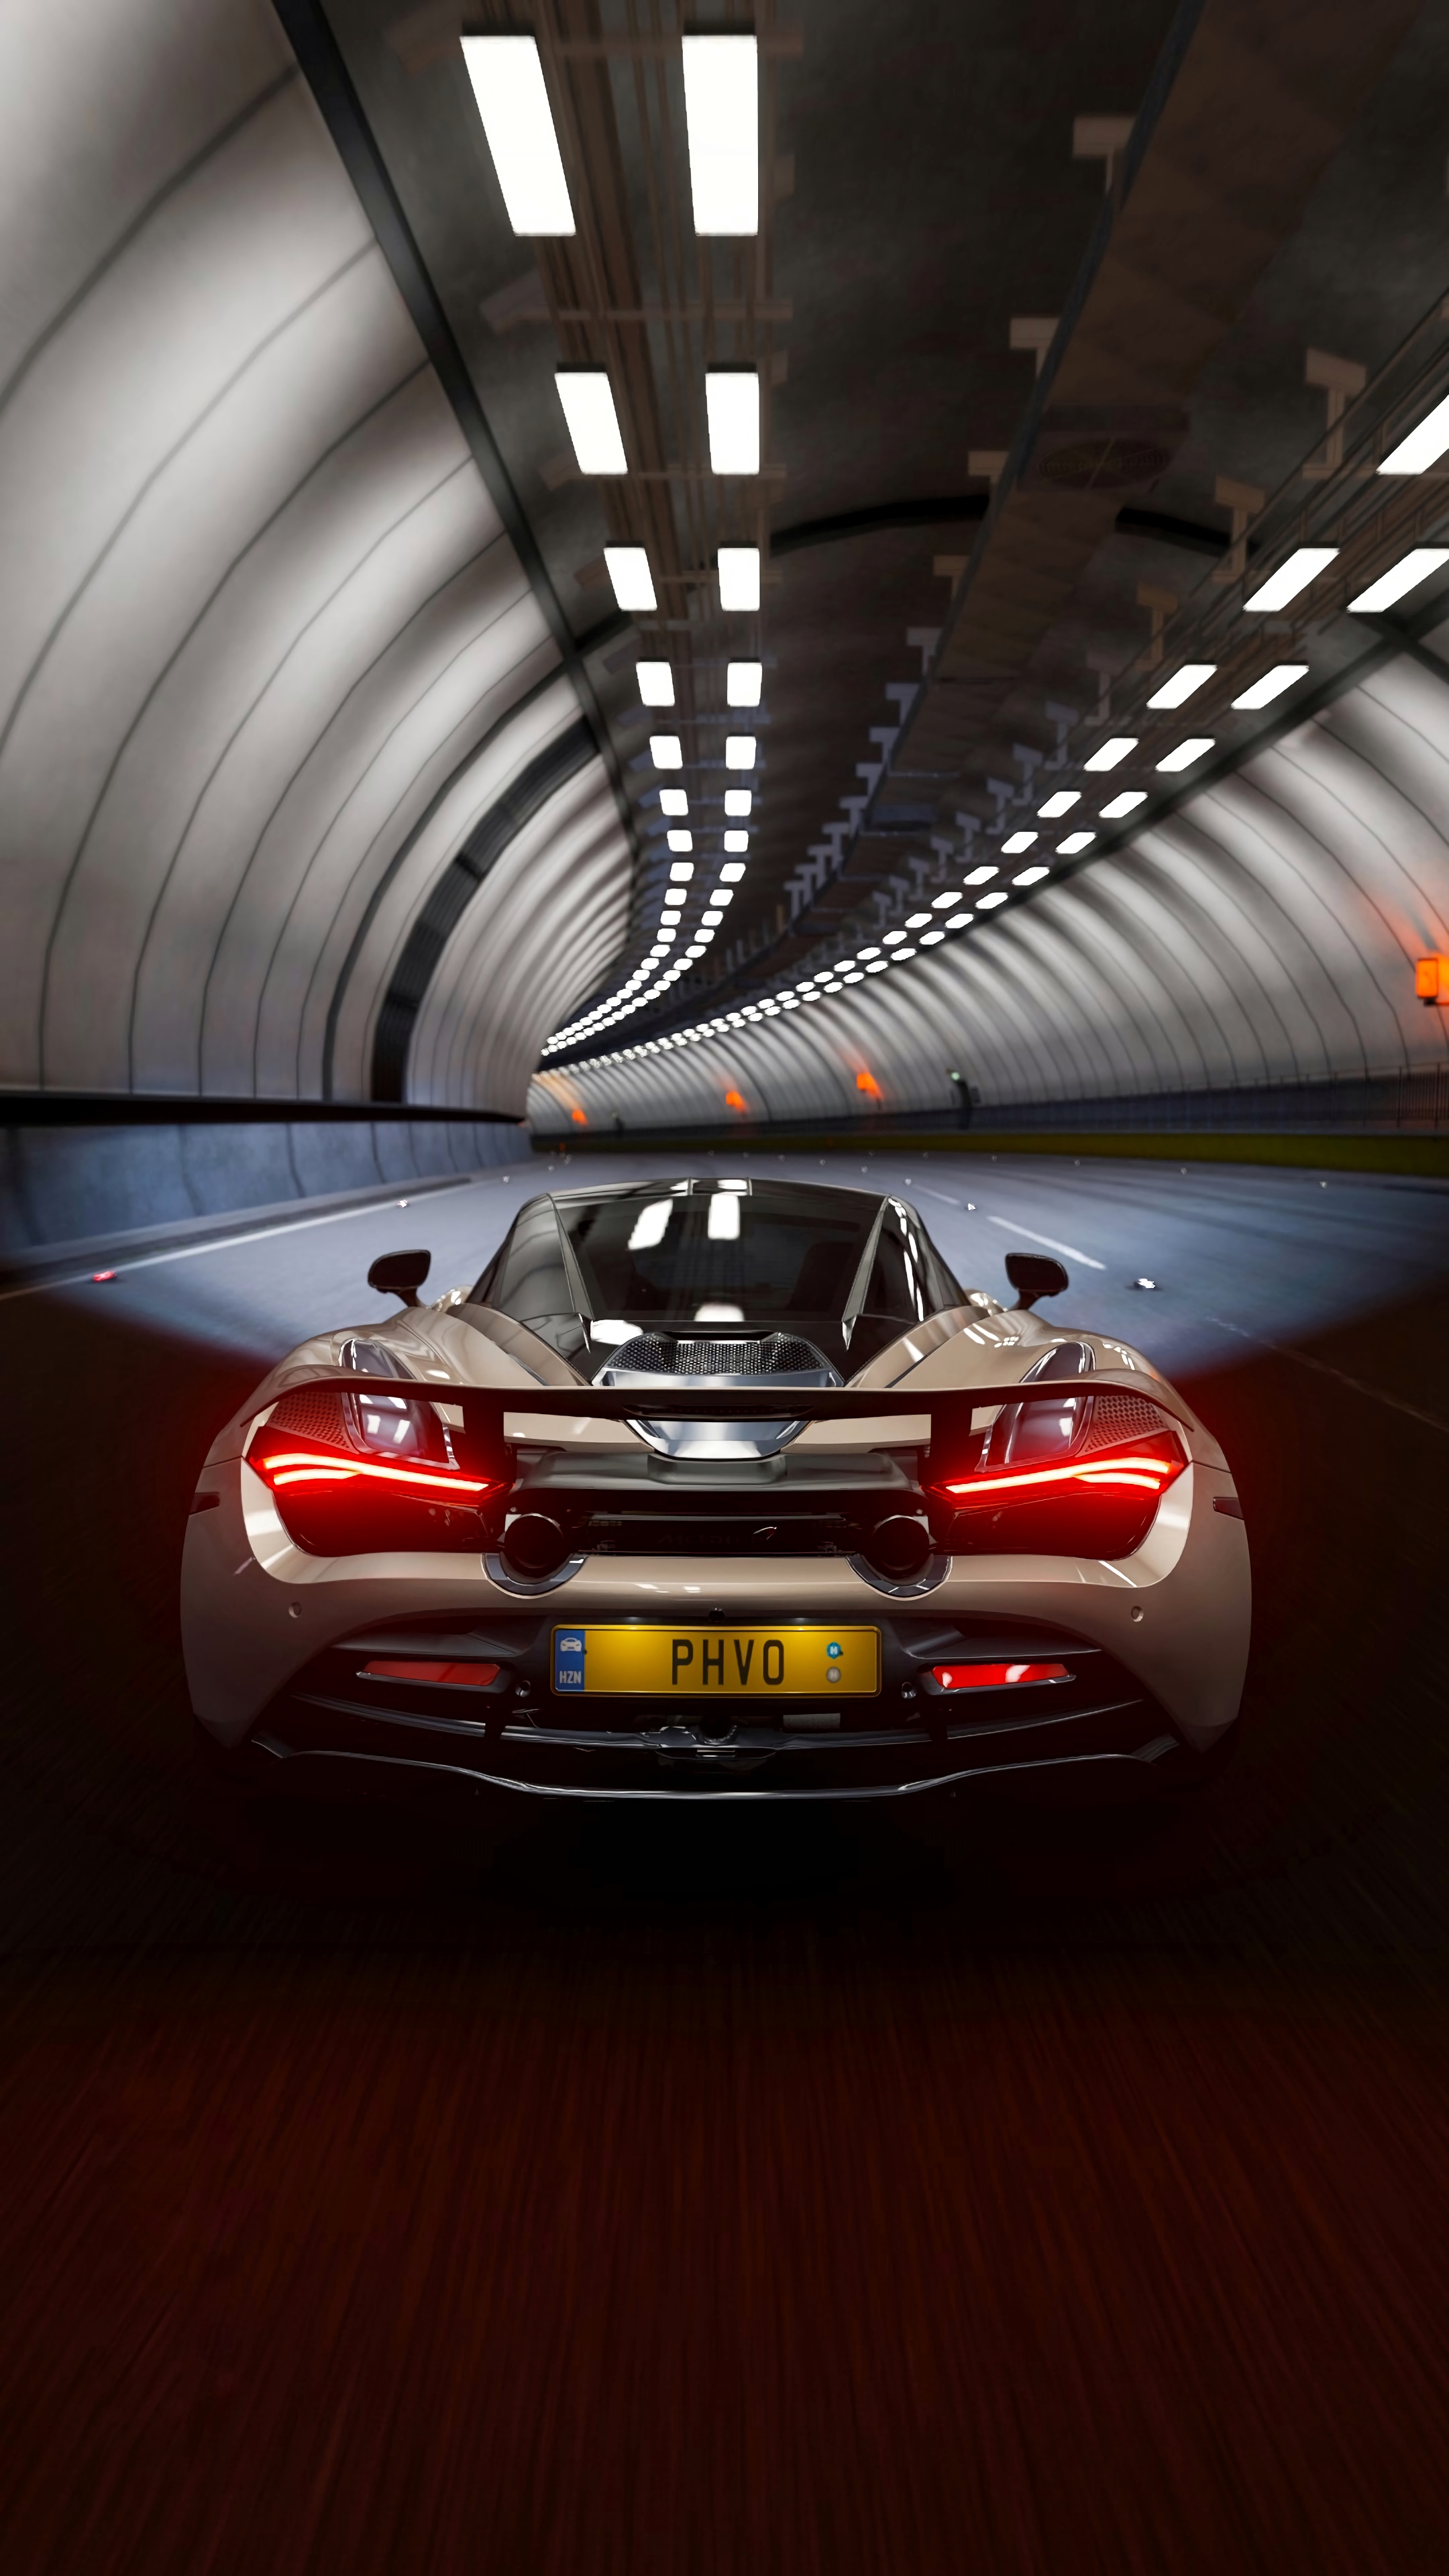 148227 download wallpaper Sports, Mclaren, Cars, Sports Car, Tunnel, Supercar, Mclaren 720S screensavers and pictures for free